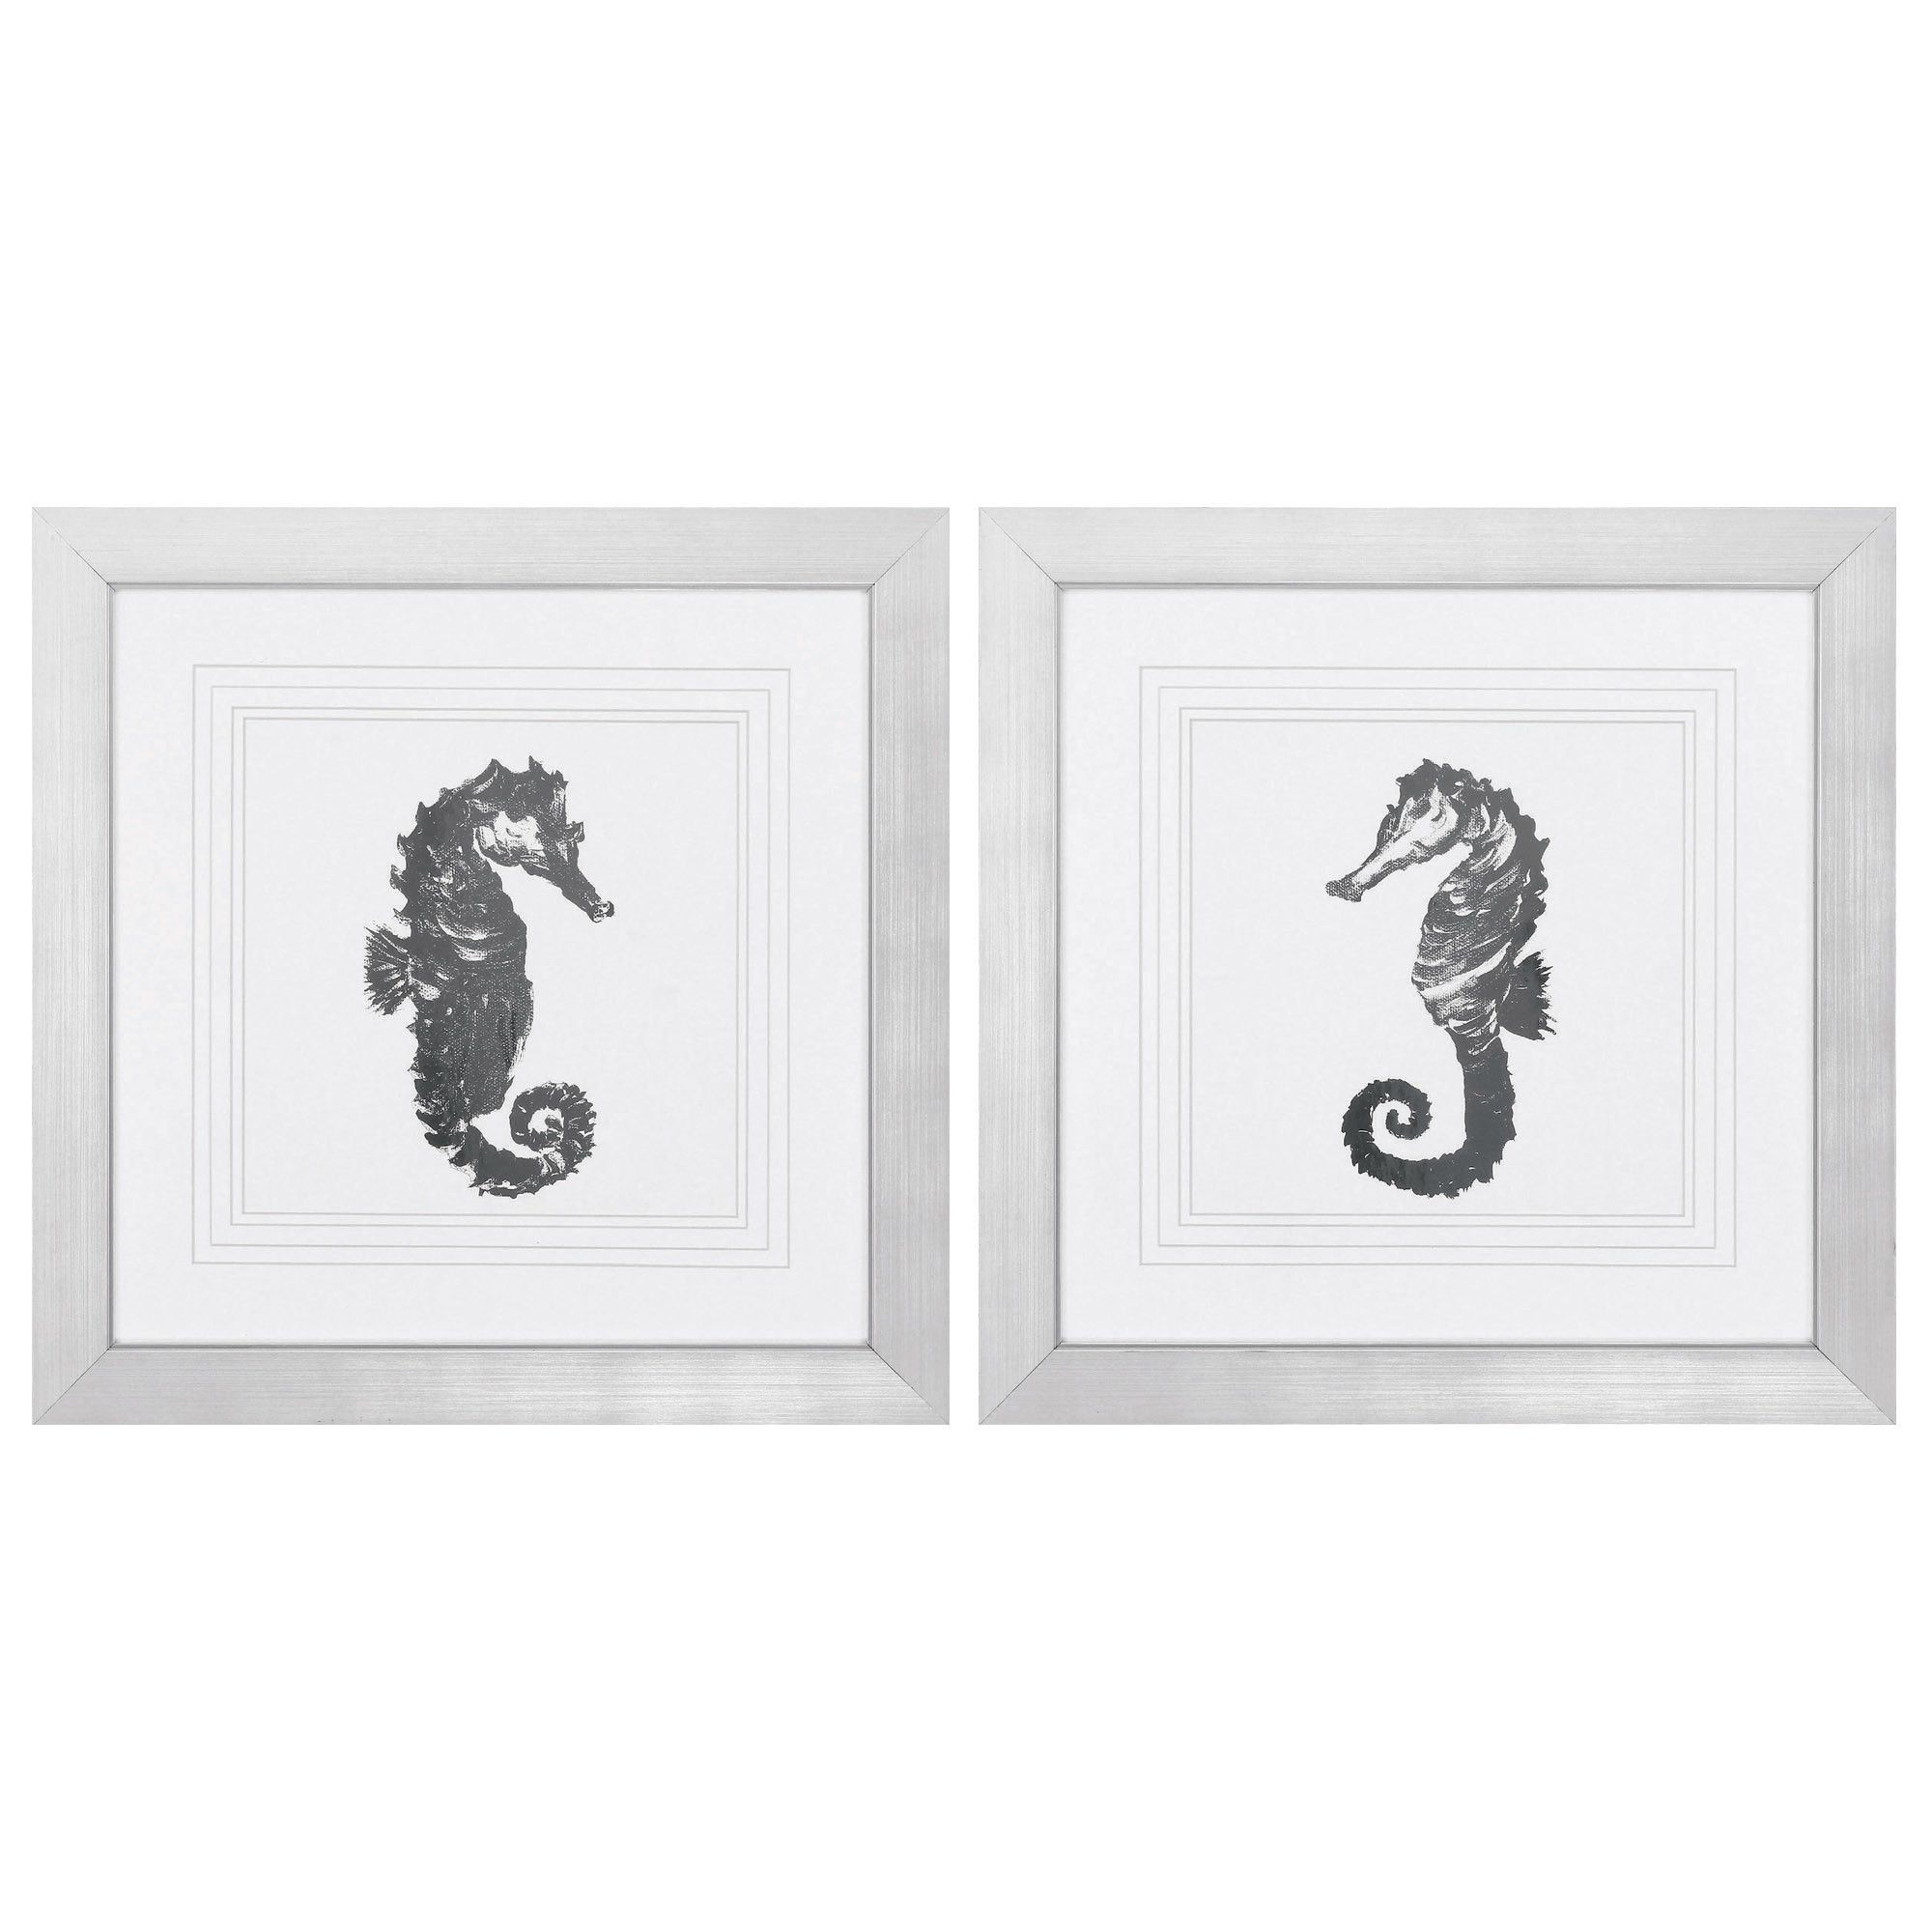 Sea horse piece framed graphic art set products pinterest